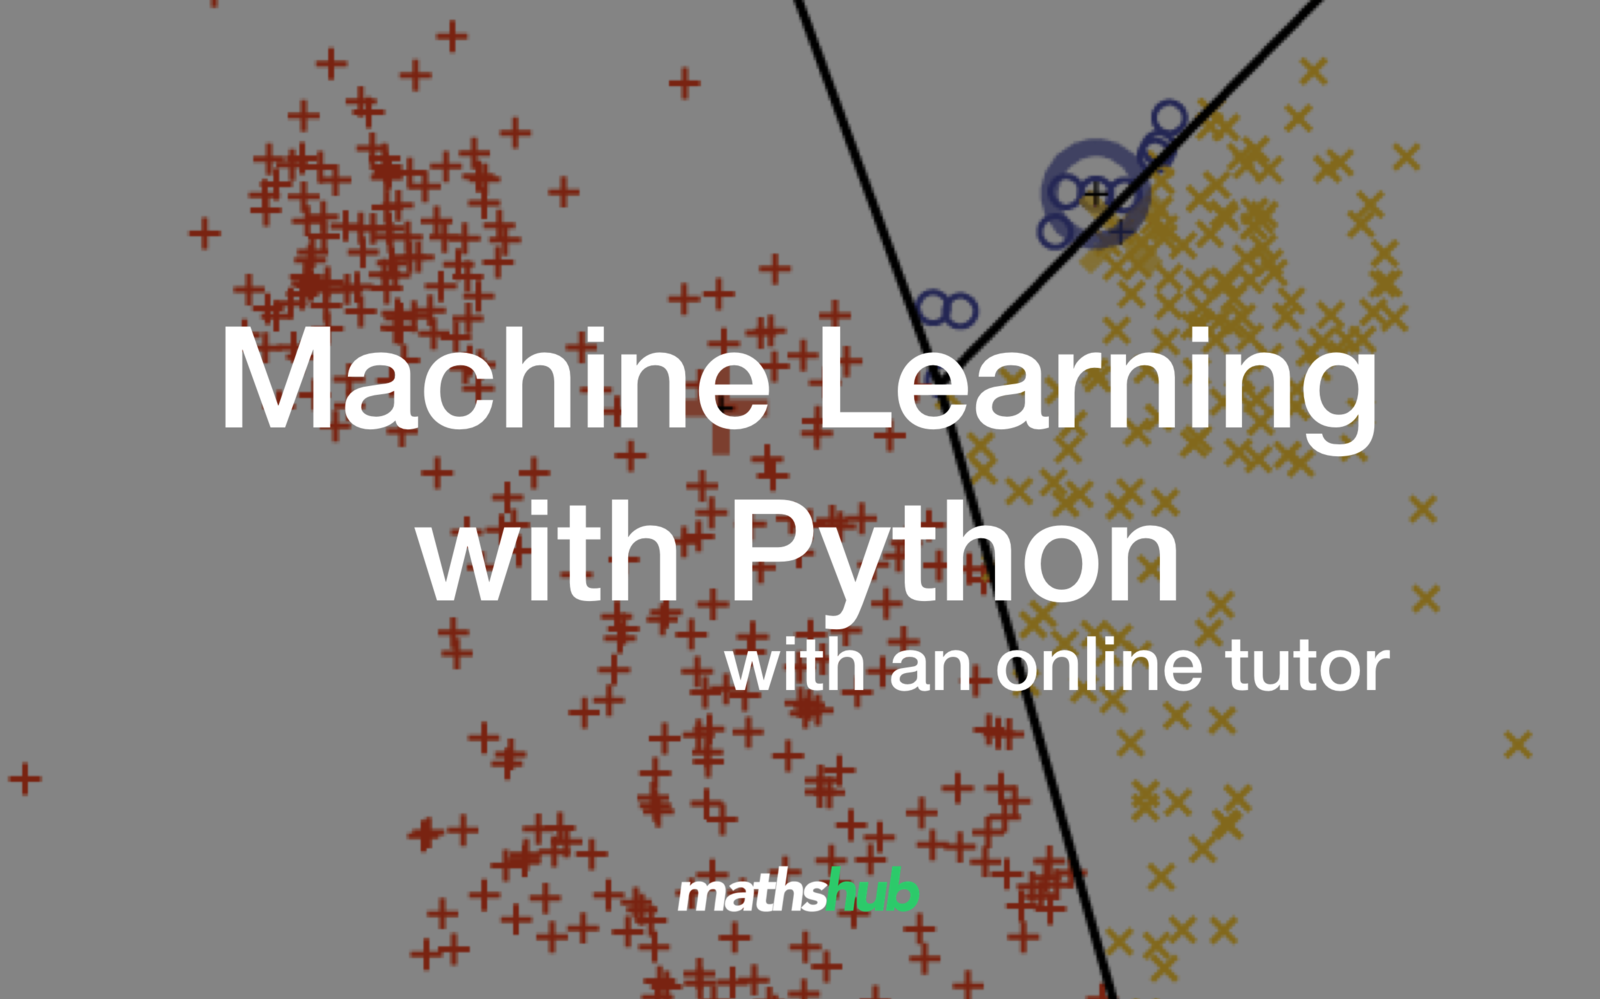 Machine Learning with Python Course, Professional goals